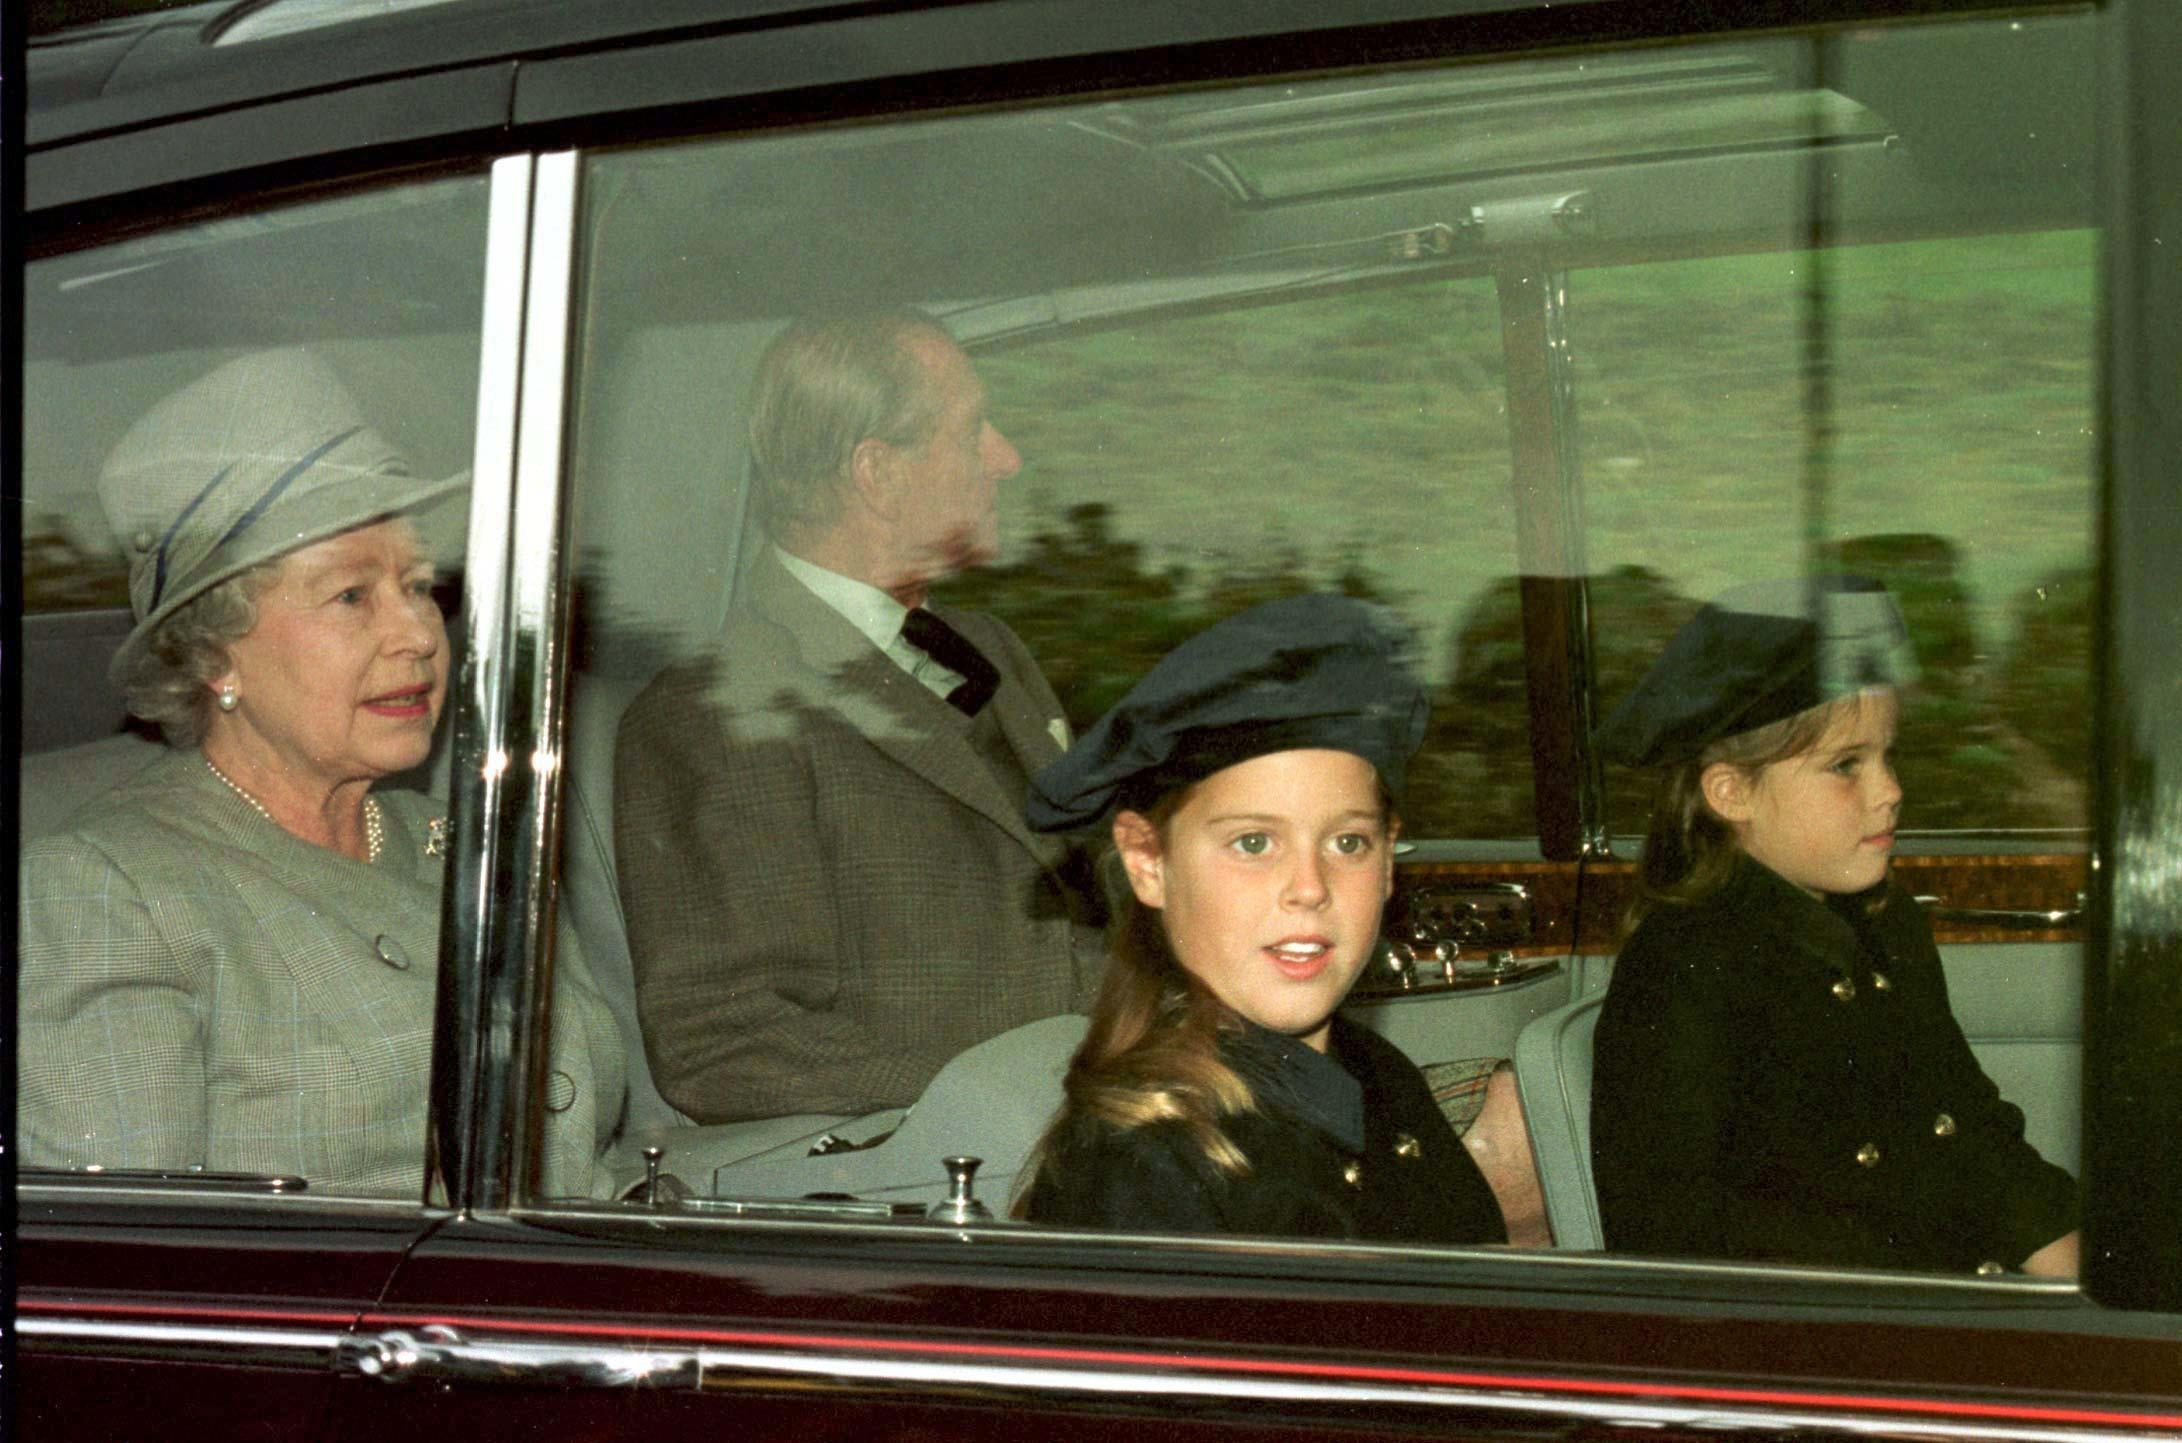 The Queen and Duke of Edinburgh with their grandchildren Princess Beatrice and Princess Eugenie (right) leaving Balmoral castle this morning (Monday) en route to Crathie Kirk church for memorial in memory of Diana, Princess of Wales. Photo by Owen Humphreys/PA. See PA story DIANA Anniversary